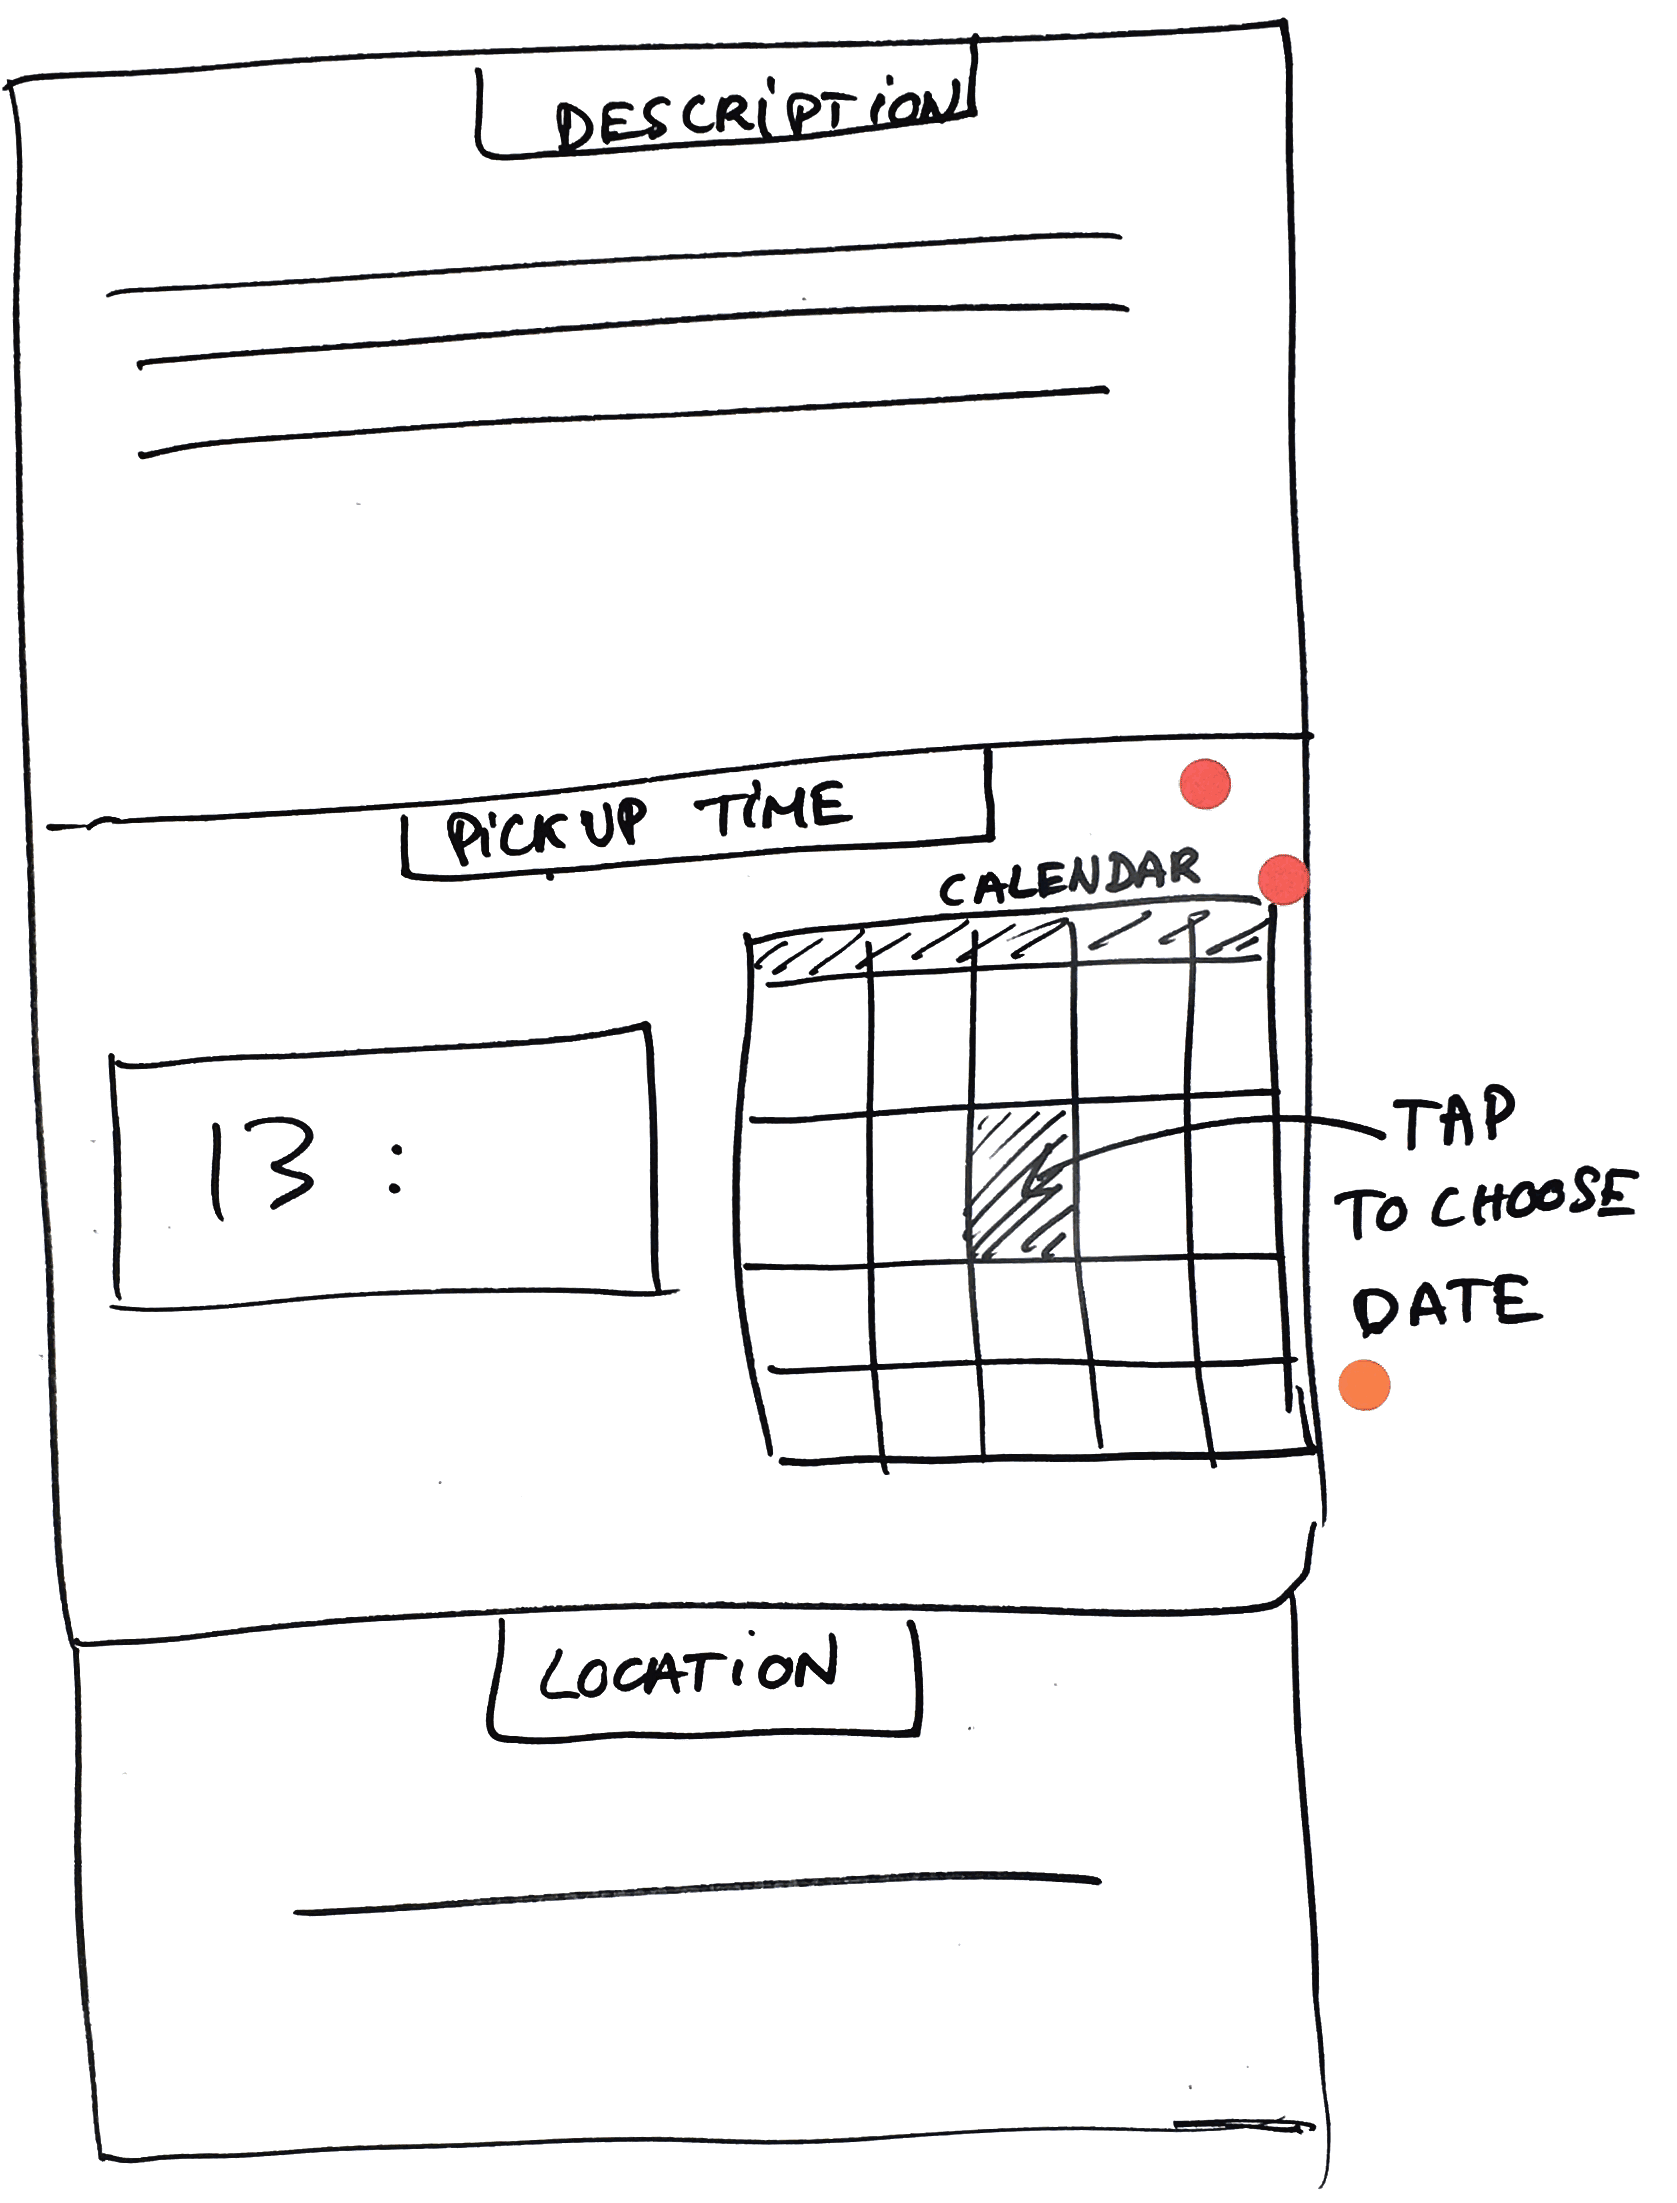 In the first round, I sketched a calendar feature.